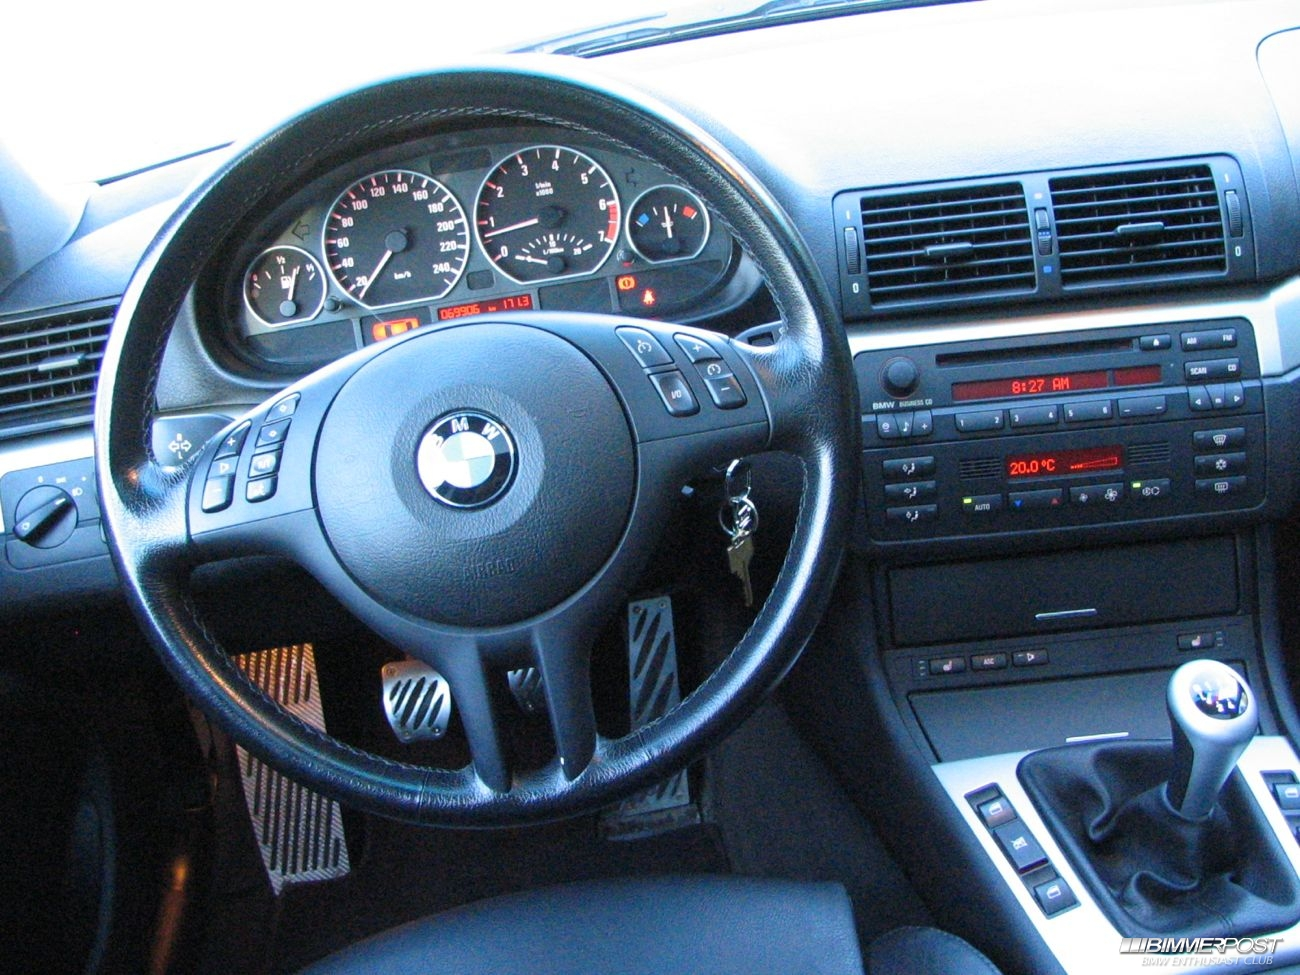 Rswbmw S 2005 Bmw 325i Bimmerpost Garage